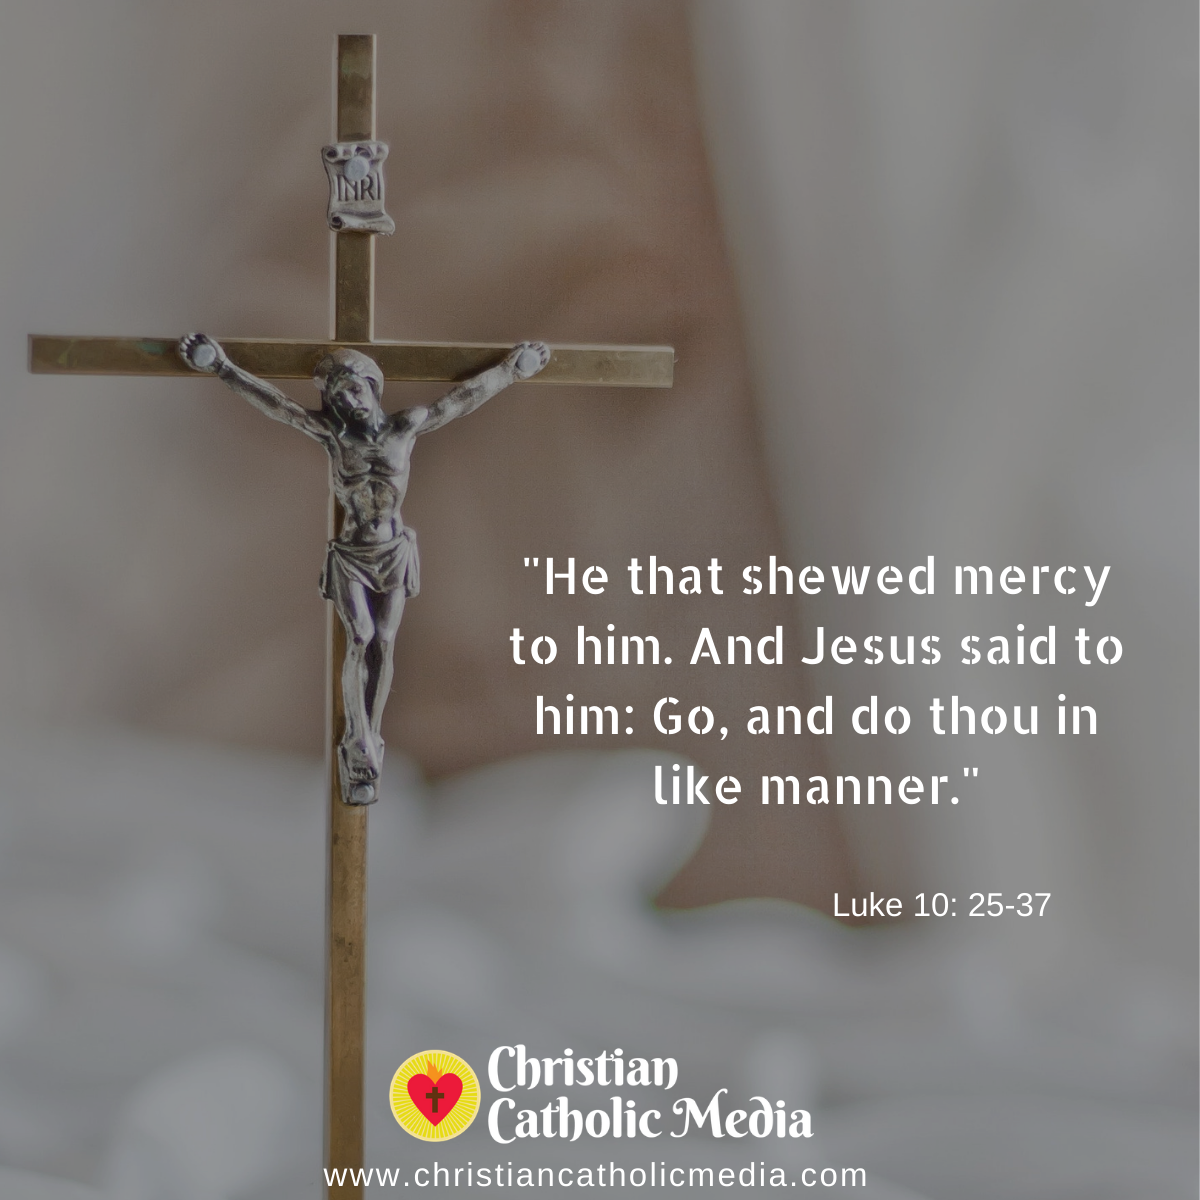 Daily Mass Readings - Monday October 5, 2020